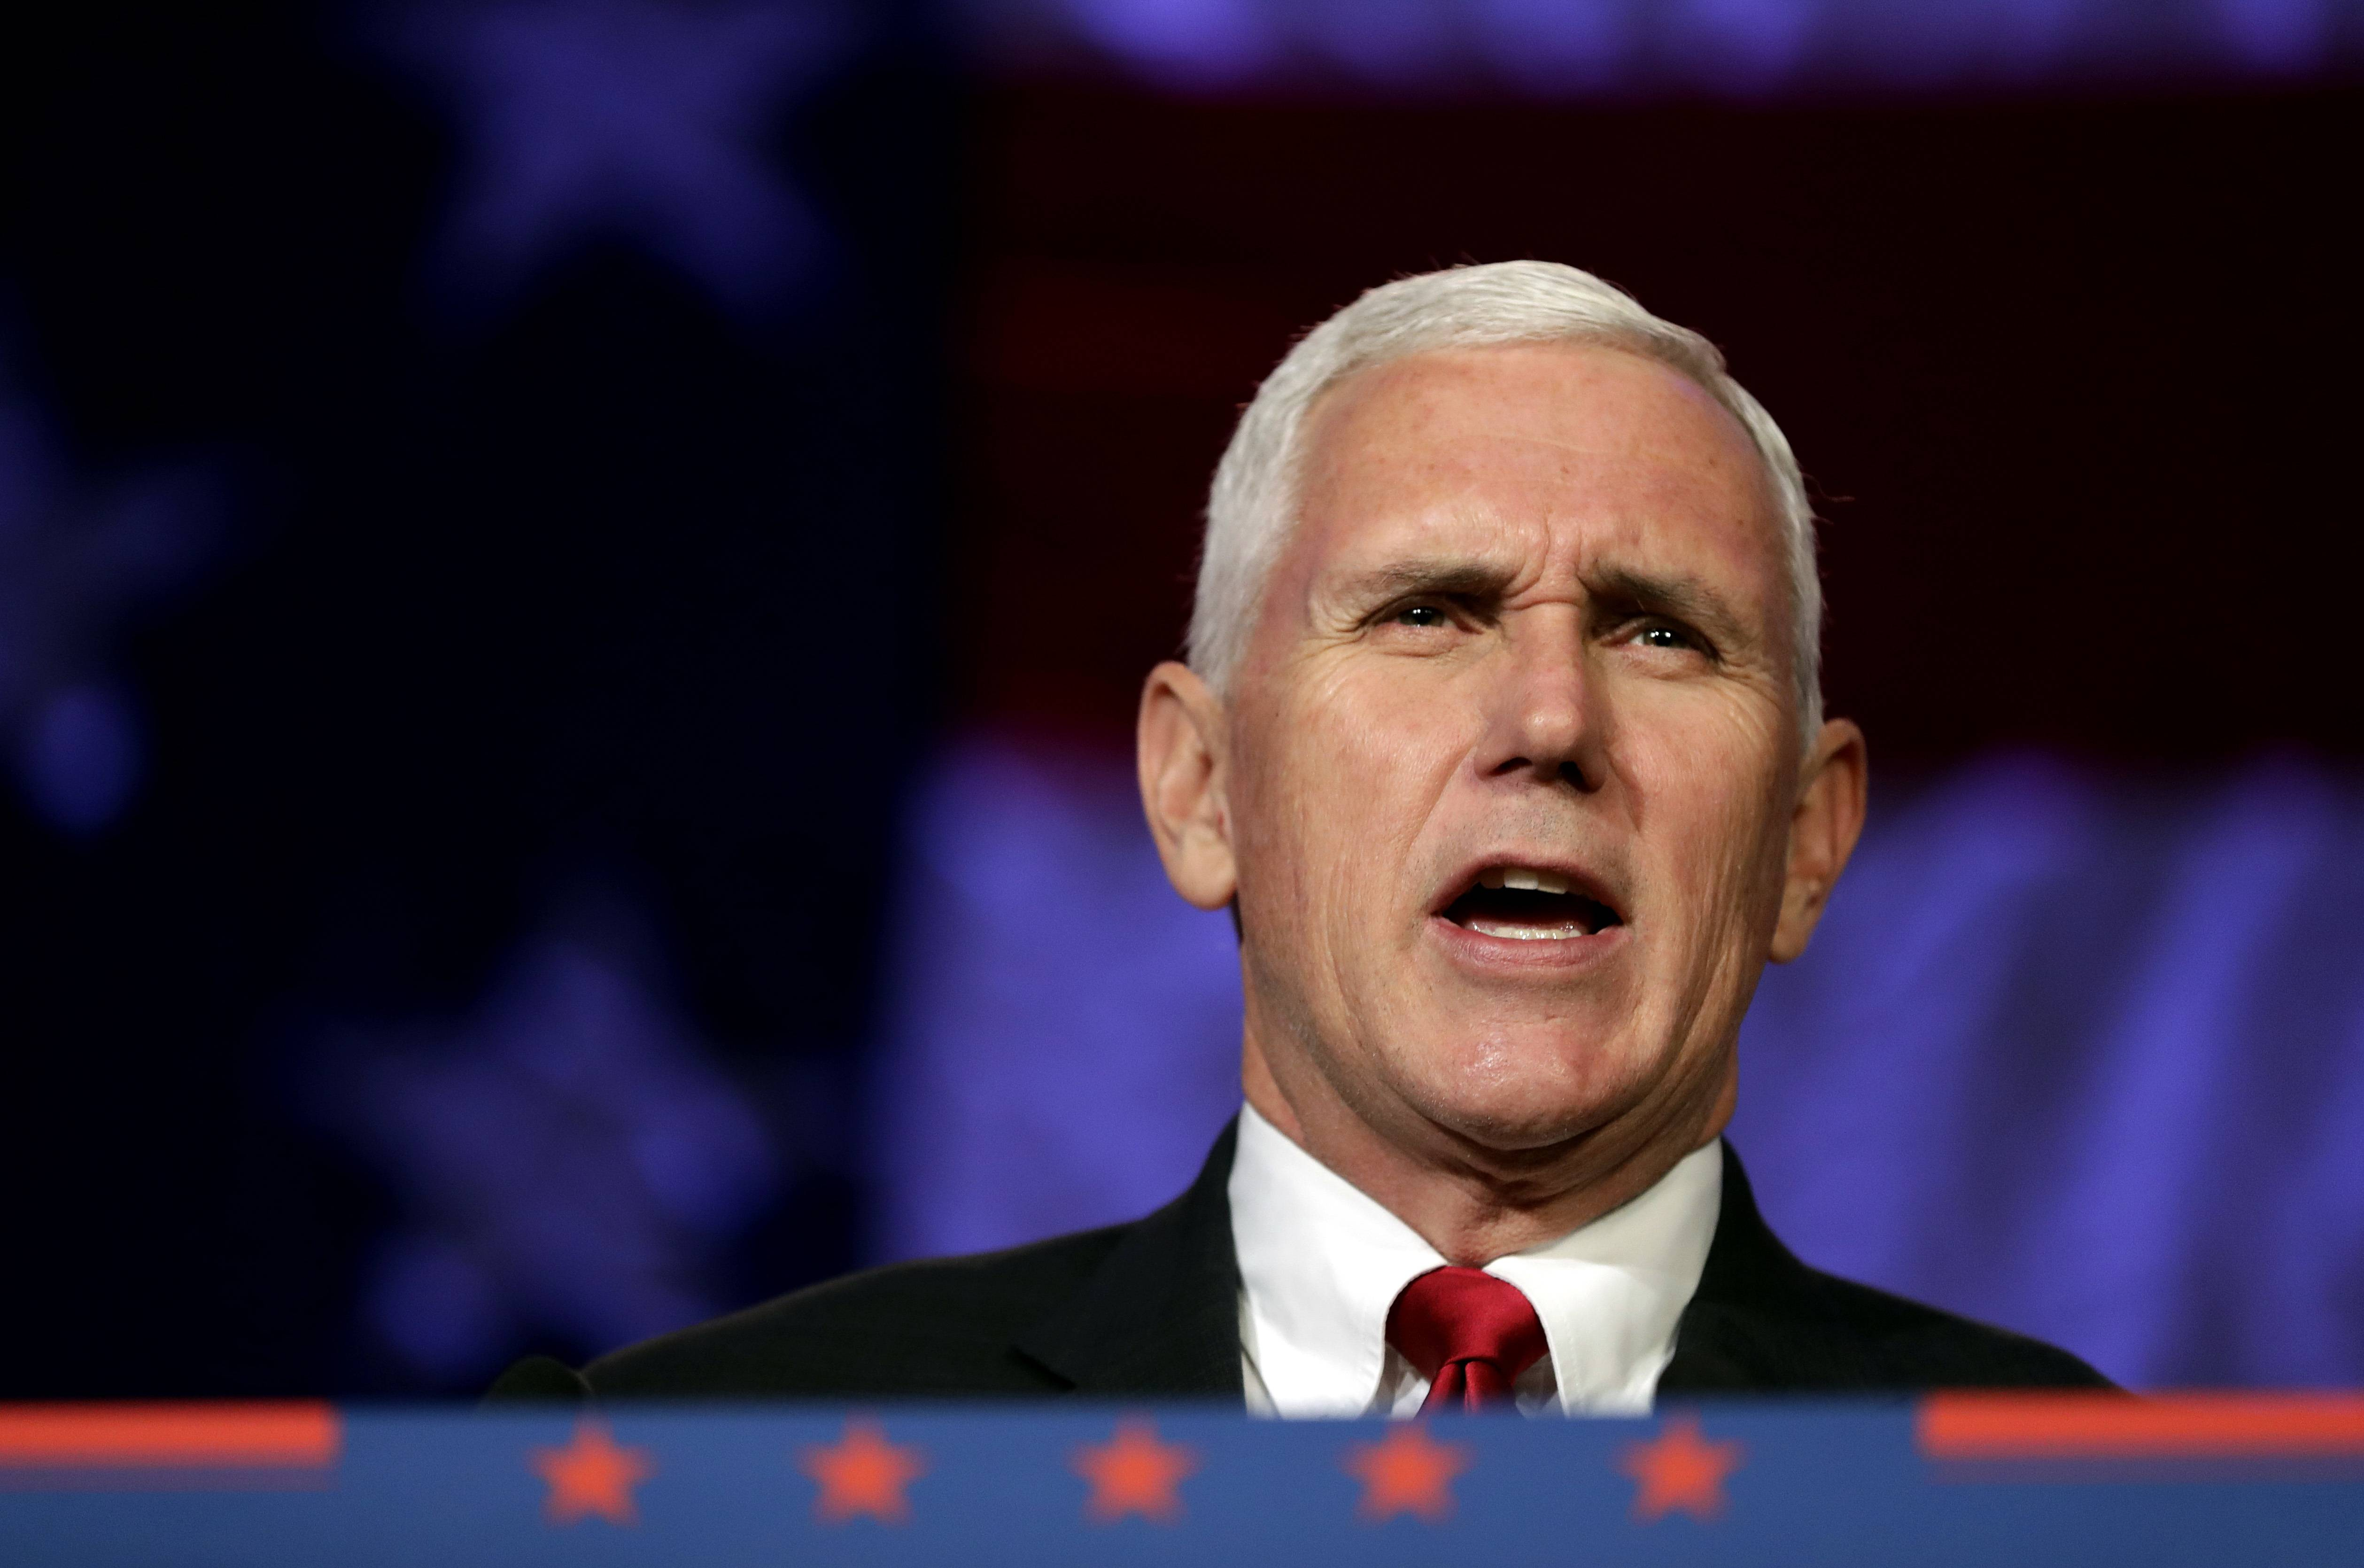 Rosemont prepares for Pence's visit Friday, possible protests